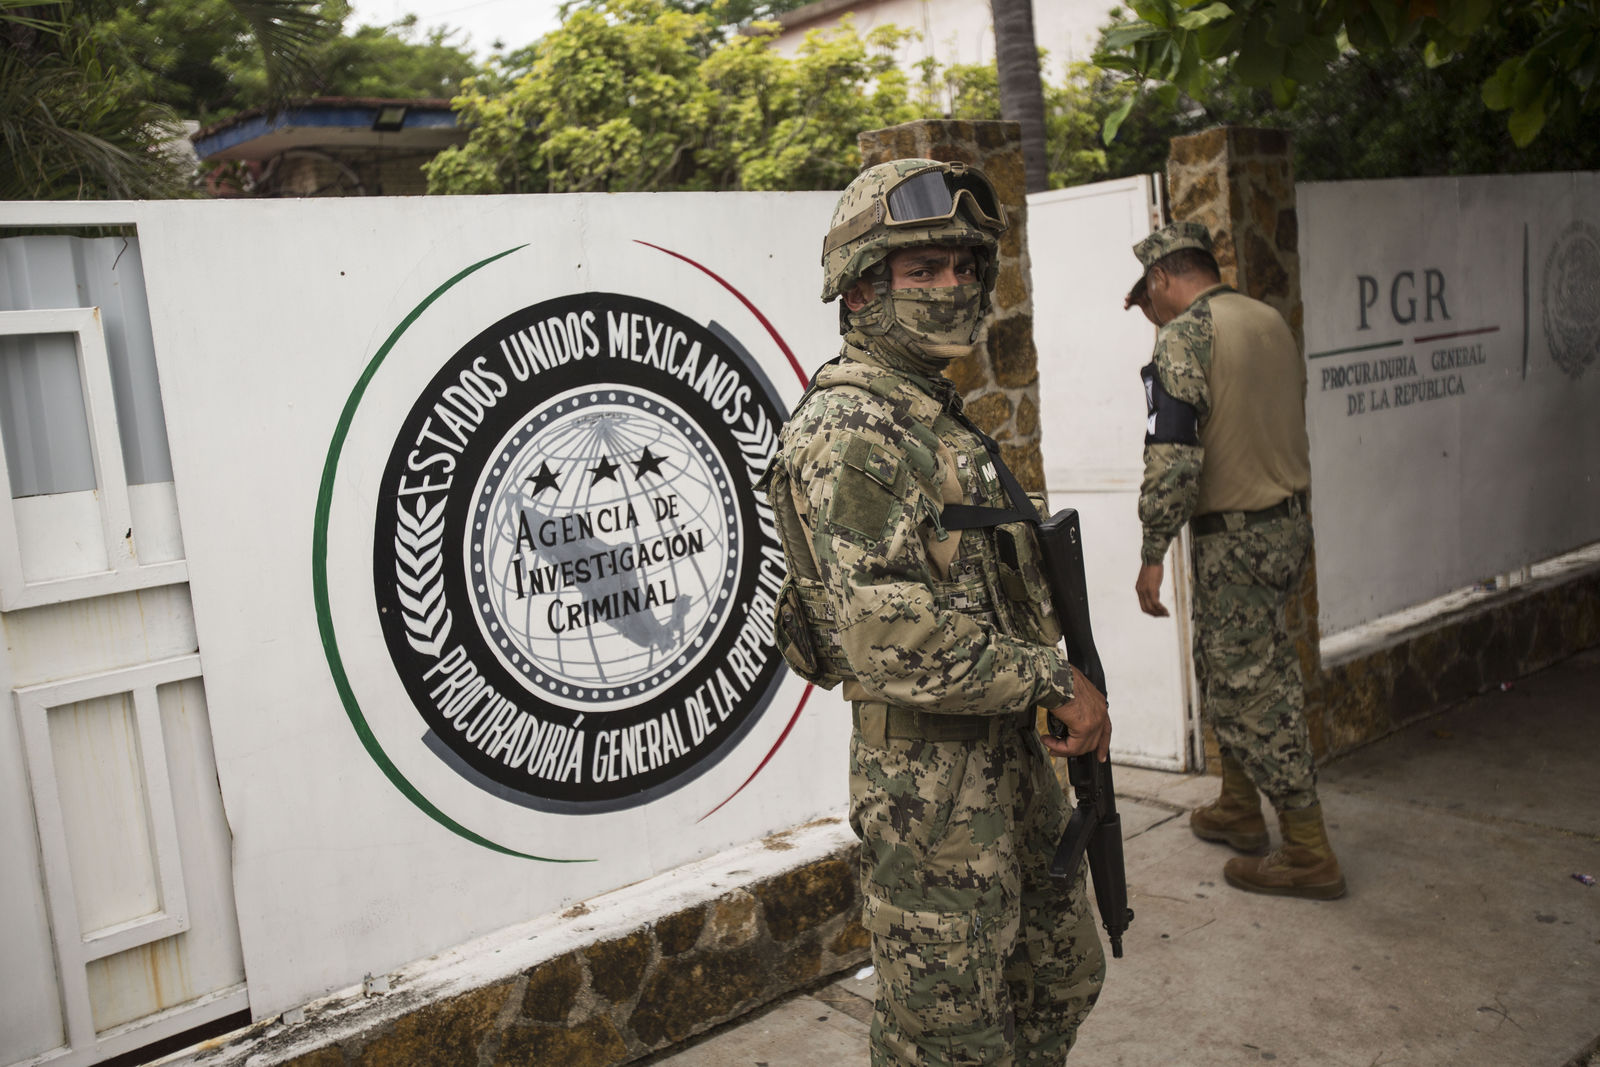 A marine, front, and National Guard, behind, stand guard outside an office of the General Attorney where migrants are brought before being transferred to Tapachula from Arriaga, Mexico, Sunday, June 23, 2019. Mexico has completed its deployment of 6,000 National Guard agents to help control the flow of migrants headed toward the U.S. and filled immigration agency posts to regulate border crossings, the government said Friday. (AP Photo/Oliver de Ros)